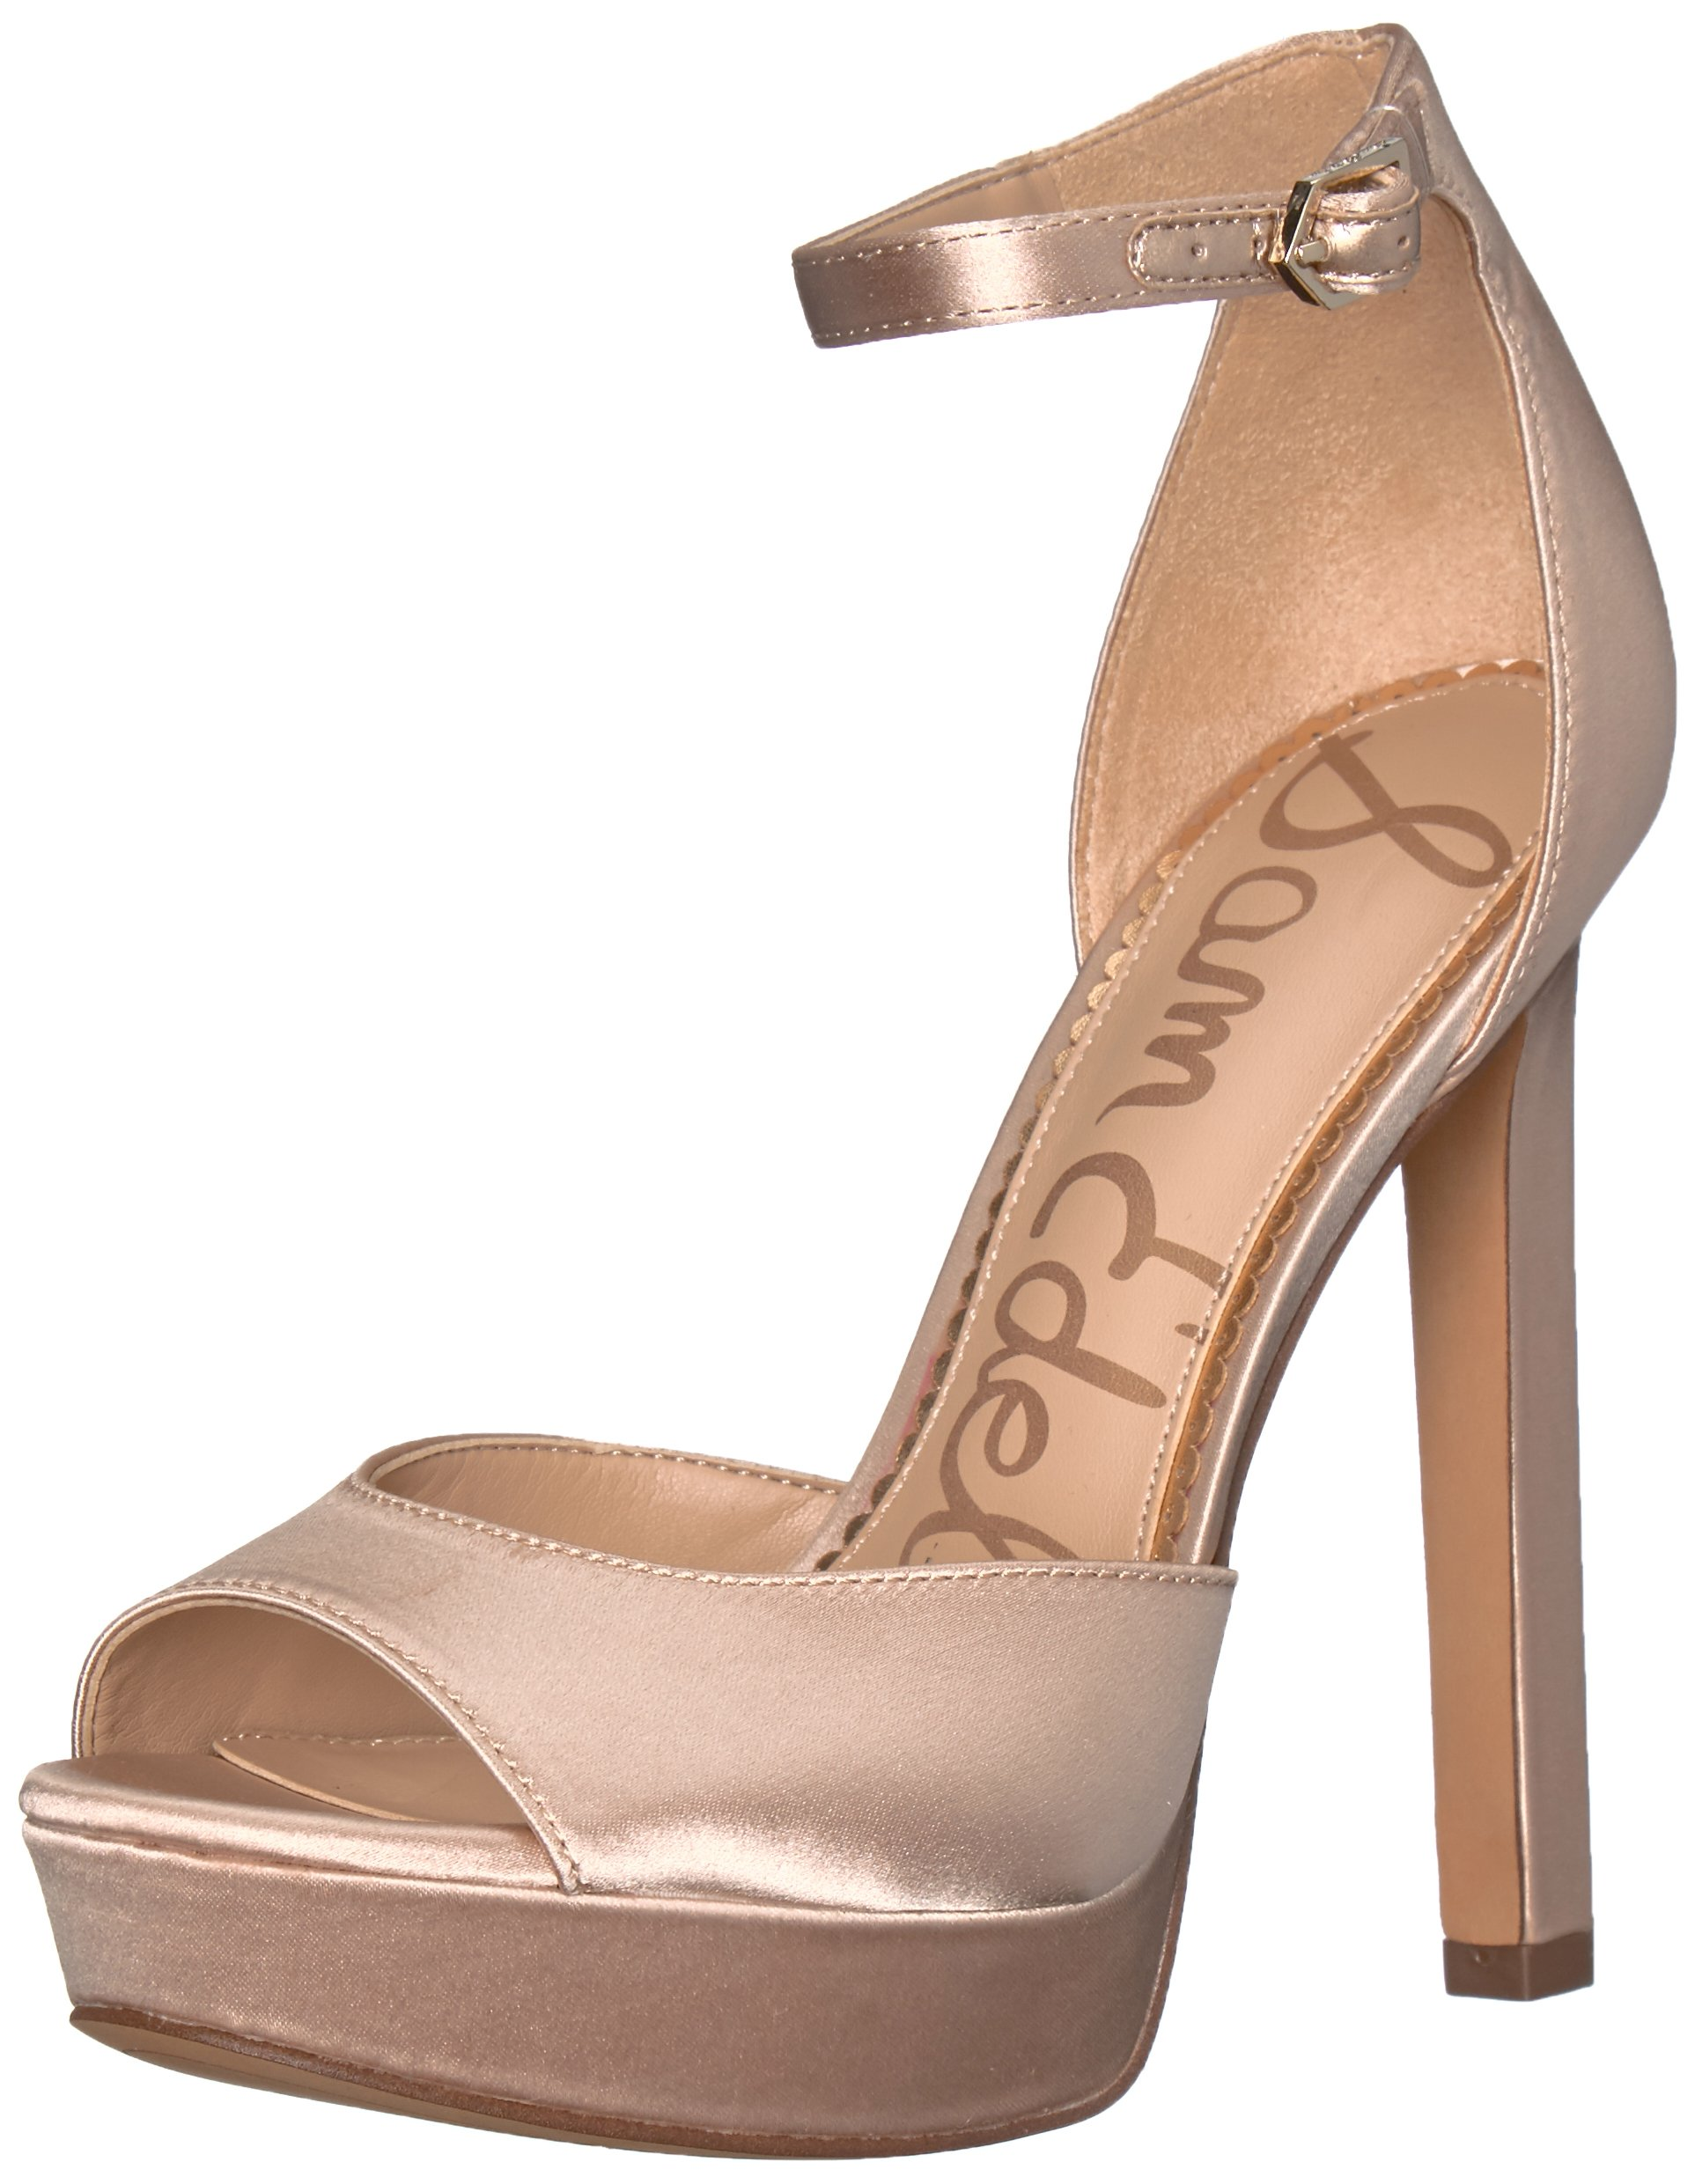 Sam Edelman Women's Wallace Heeled Sandal, Champagne, 8 Medium US